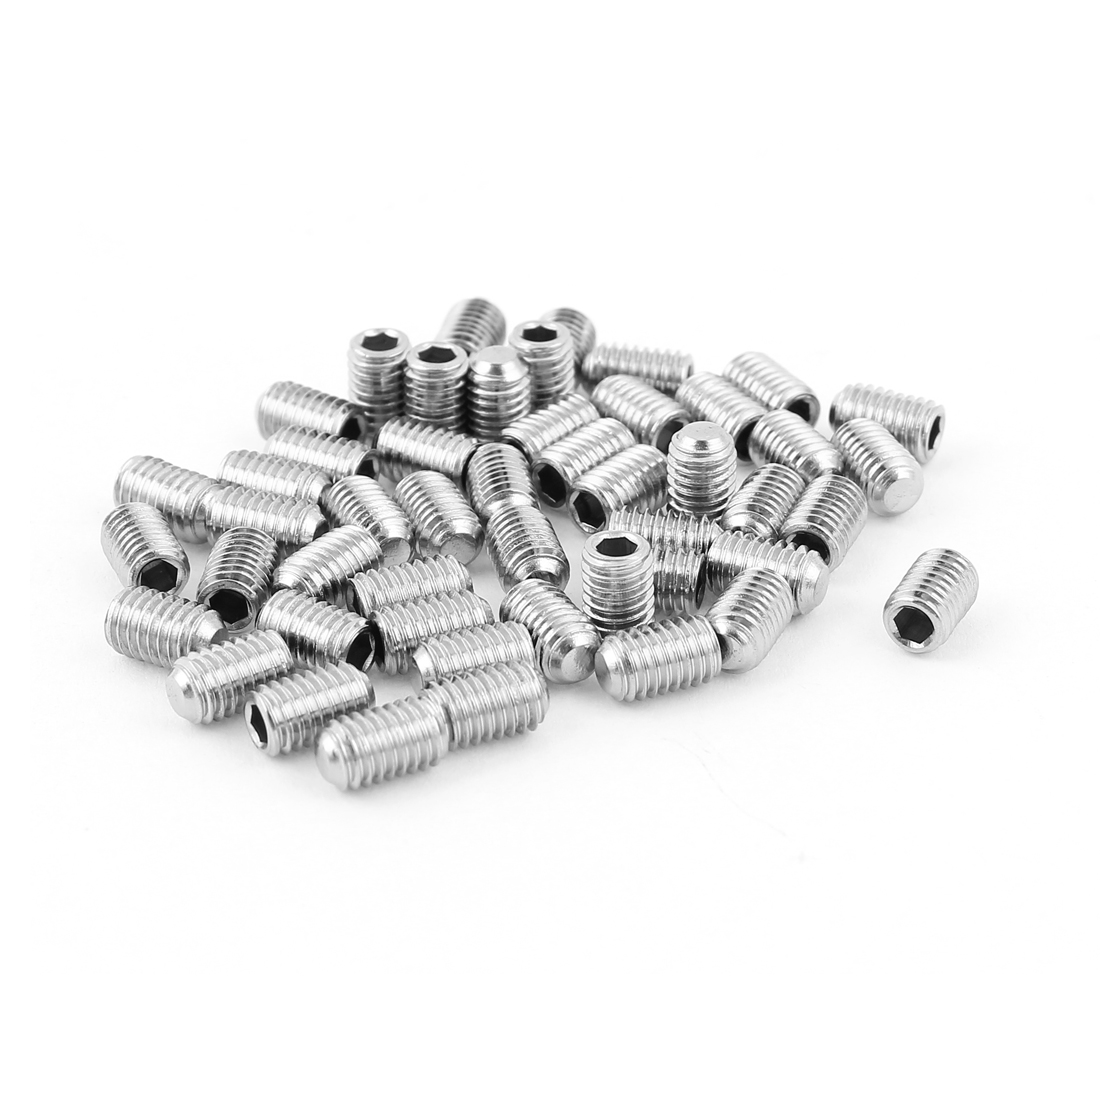 5mm x 8mm Stainless Steel Hexagon Socket Head Set Cup Point Grub Screws 50pcs